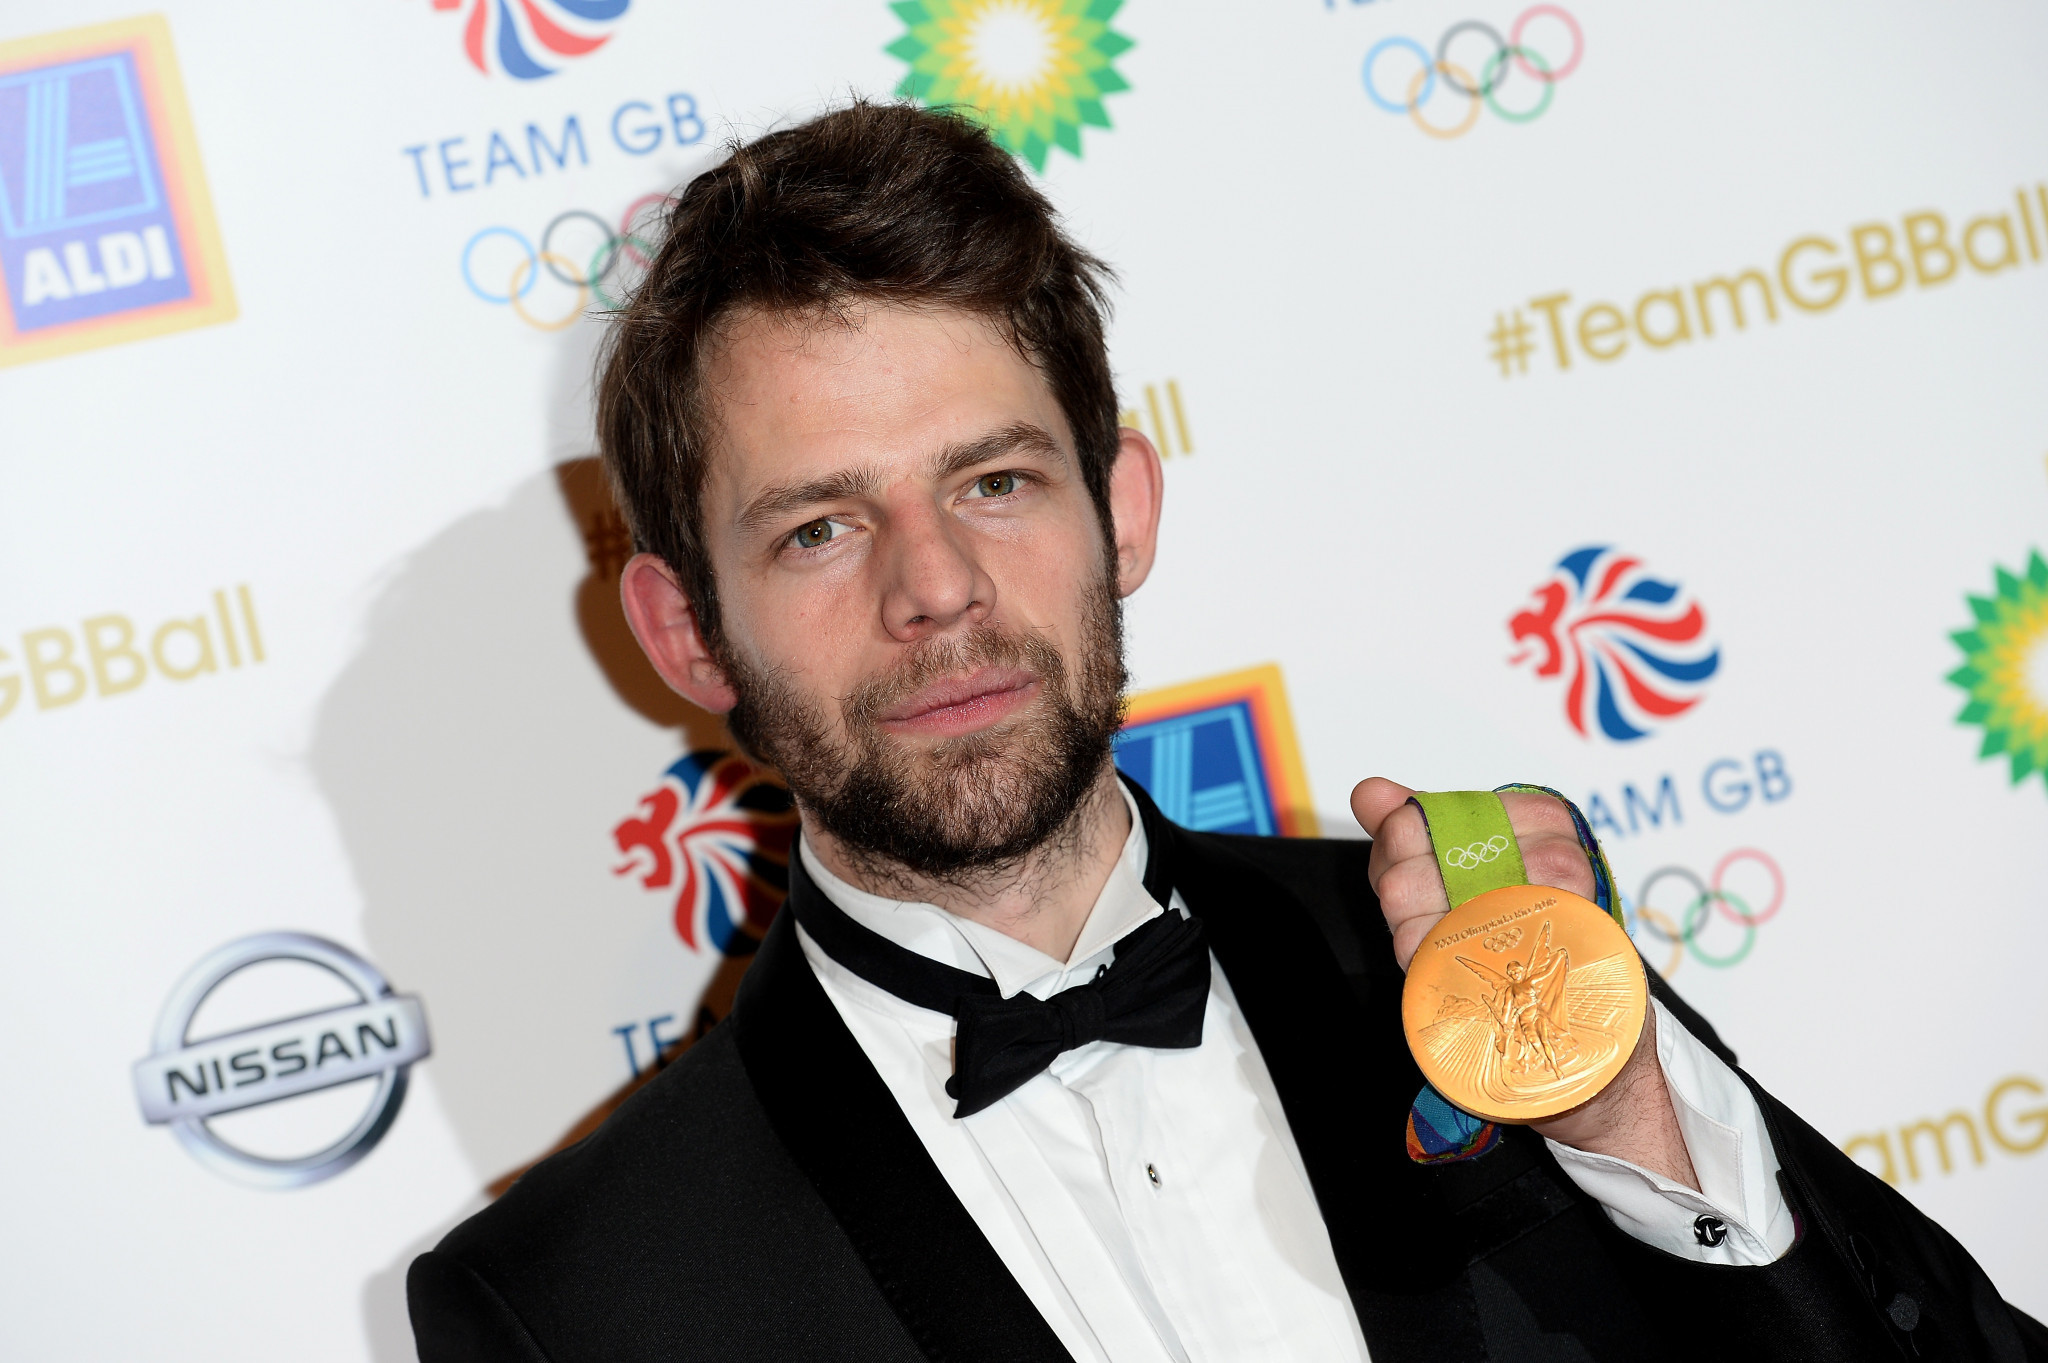 Olympic rowing champion Ransley retires after Tokyo 2020 rescheduling